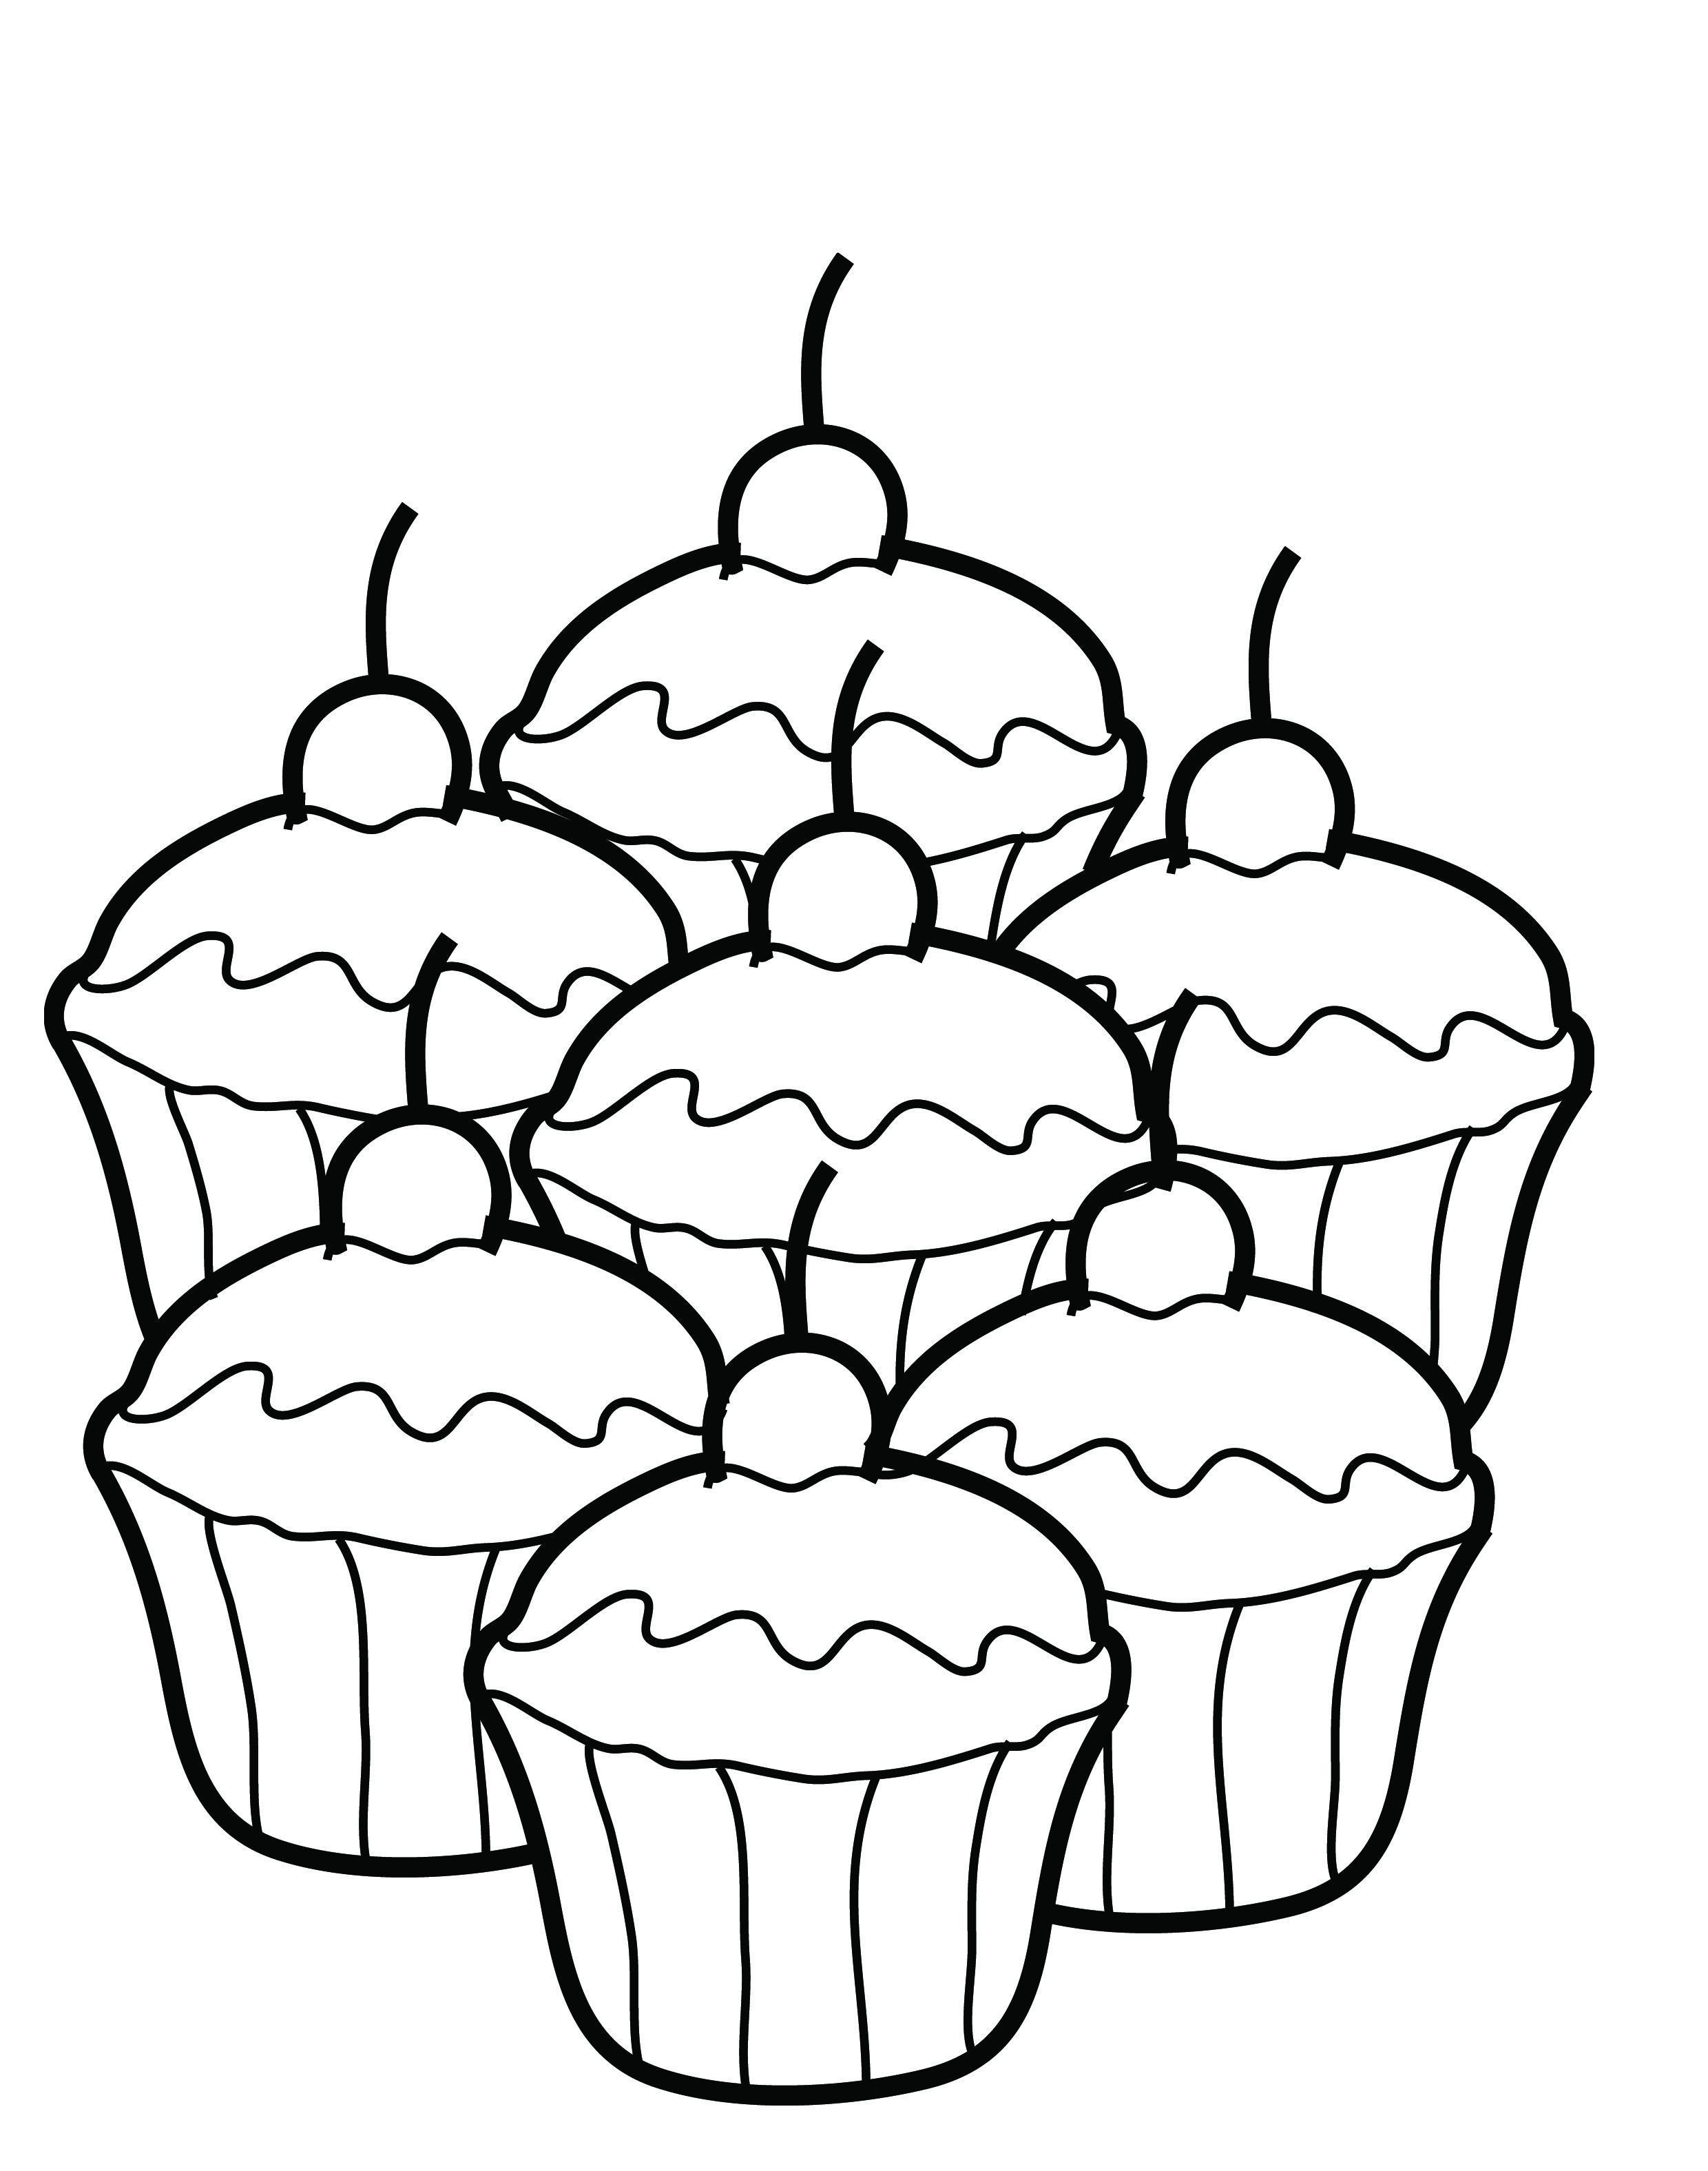 cupcake coloring pages for kids - Color In Pages